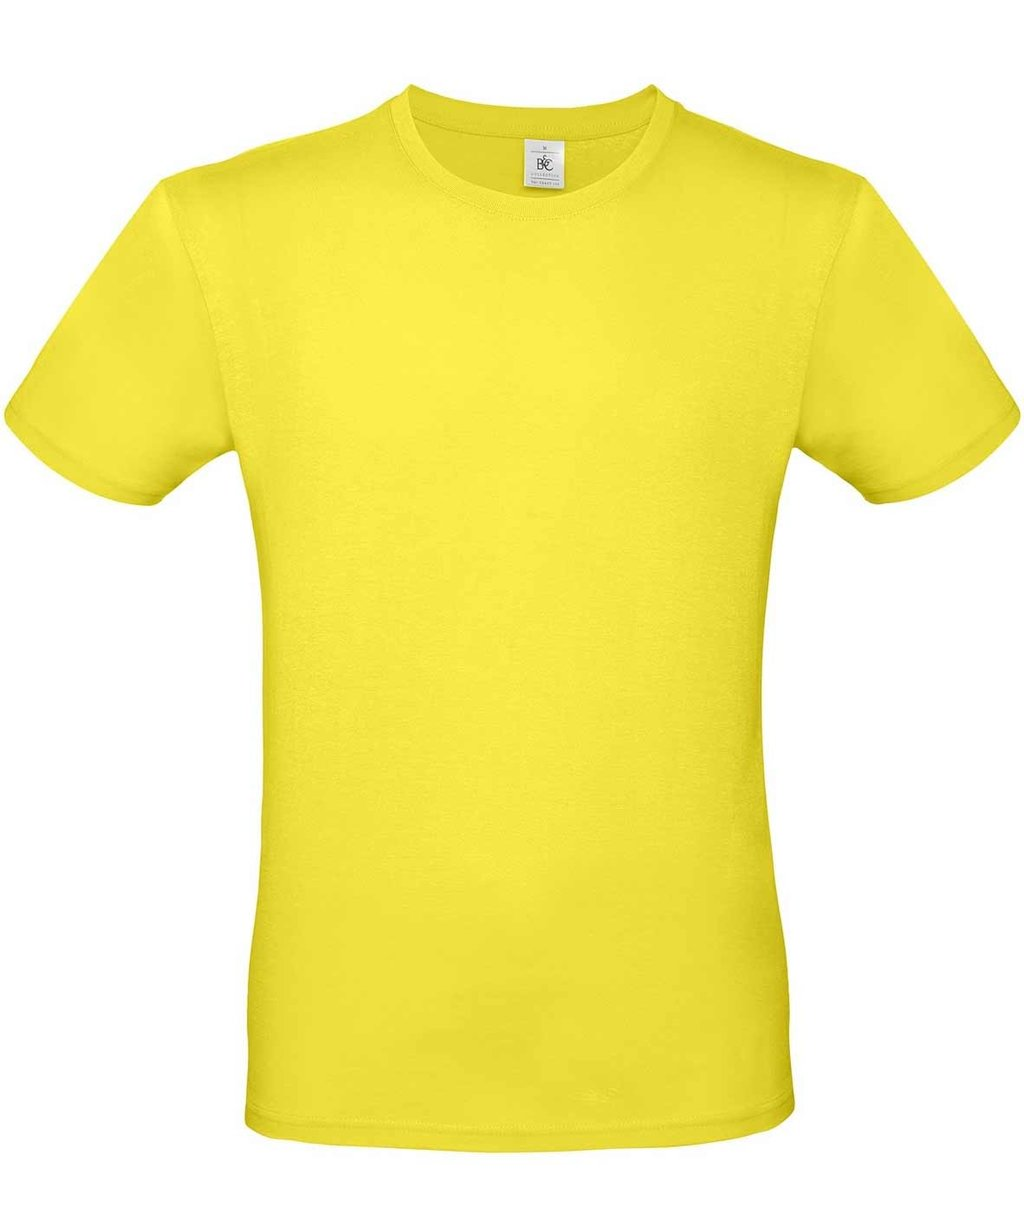 B&C #E150 unisex T-shirt, Solar Yellow